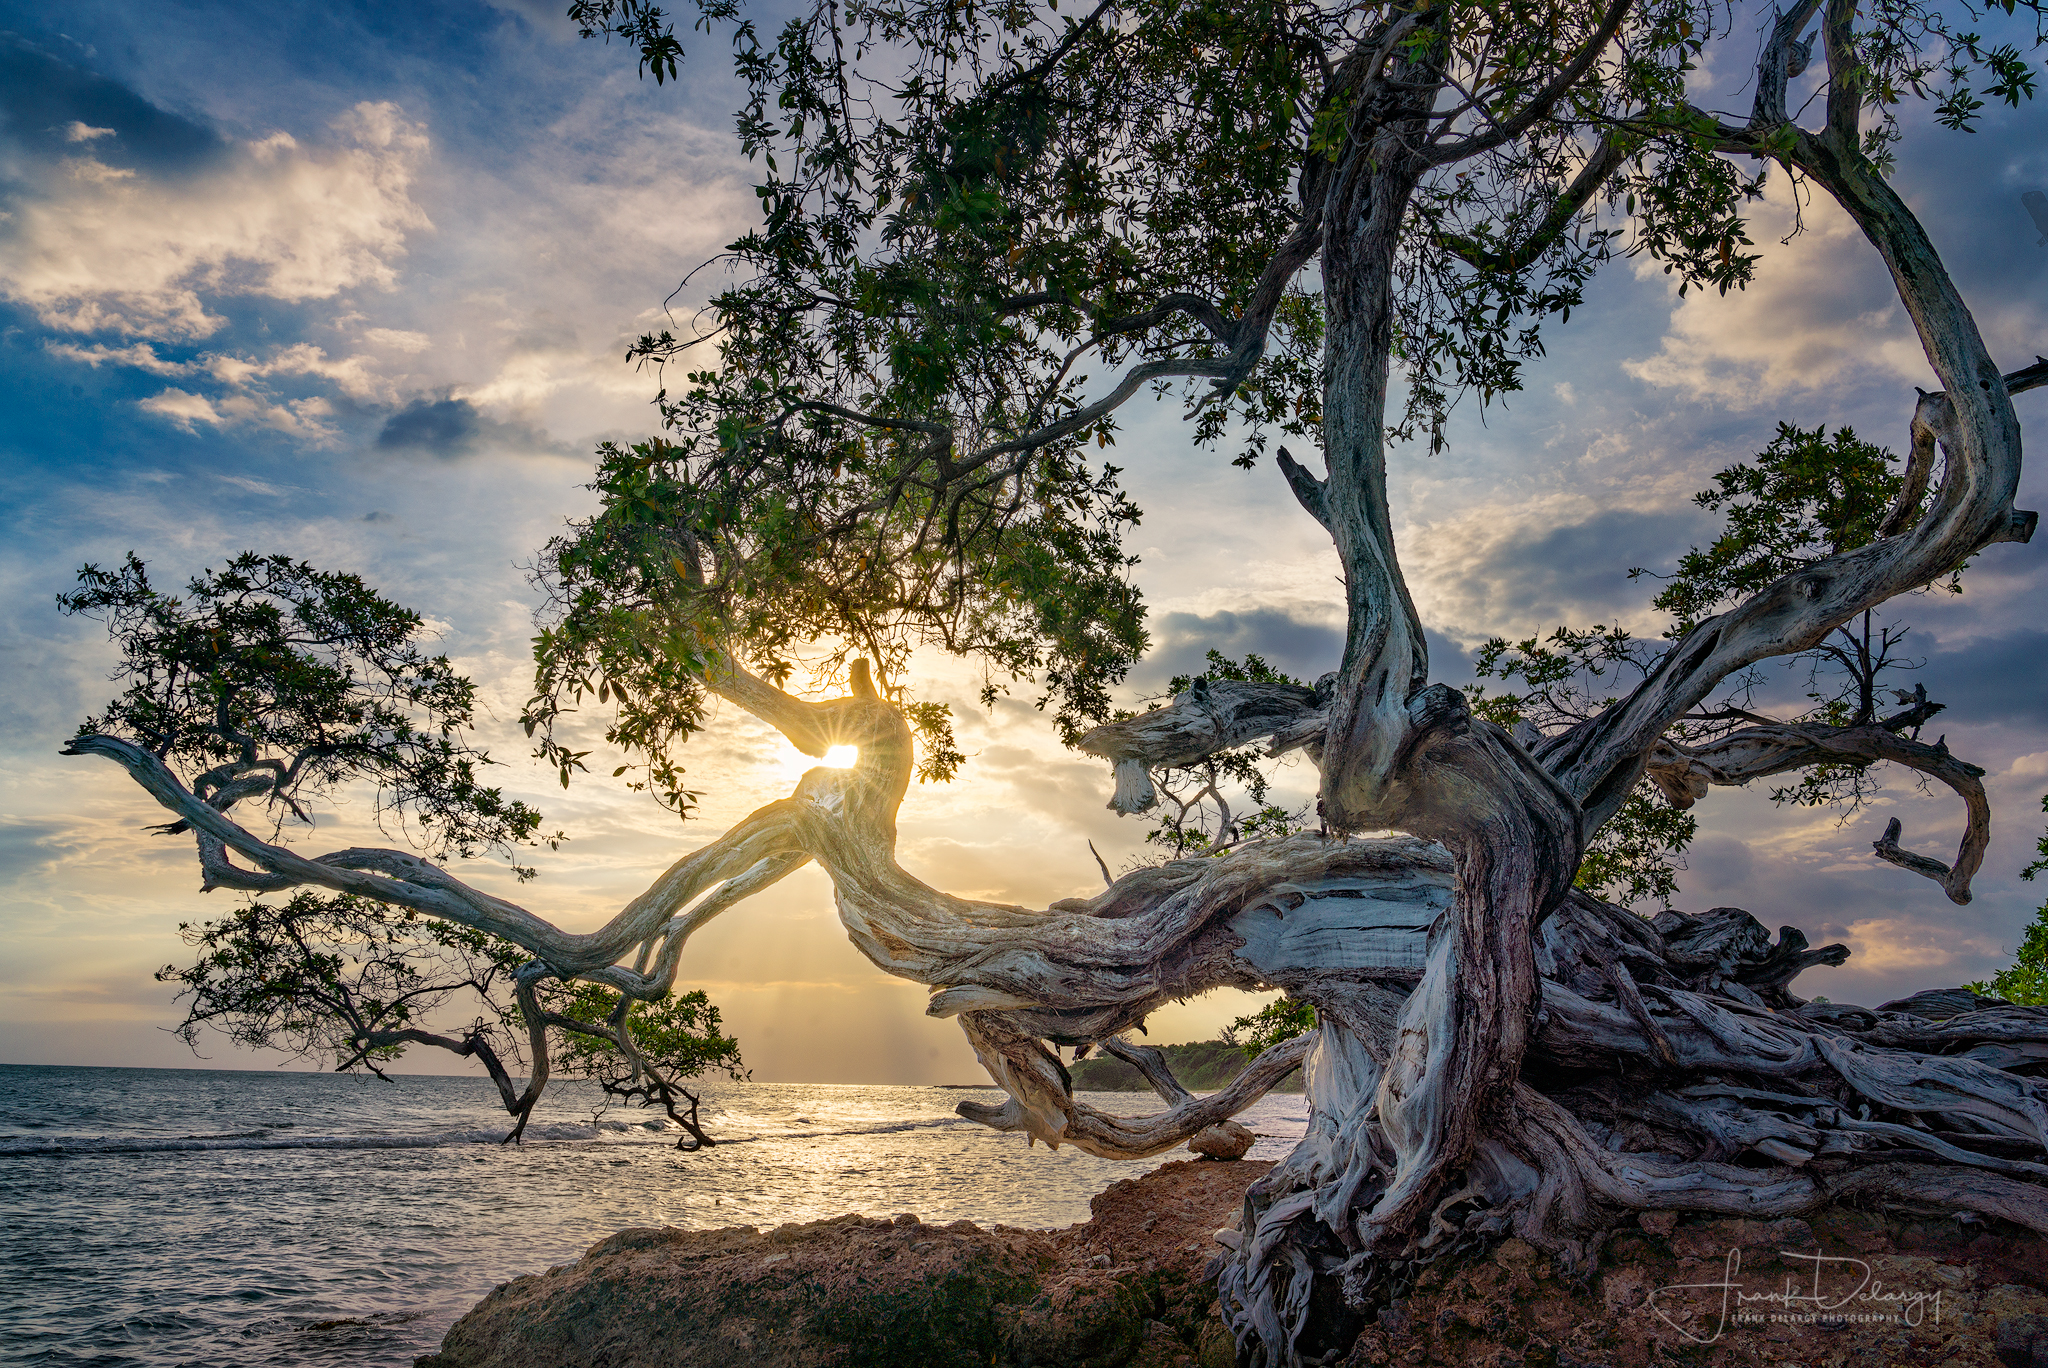 _DSC3083-buttonwood-tree-treasure-beach-jamaica.jpg